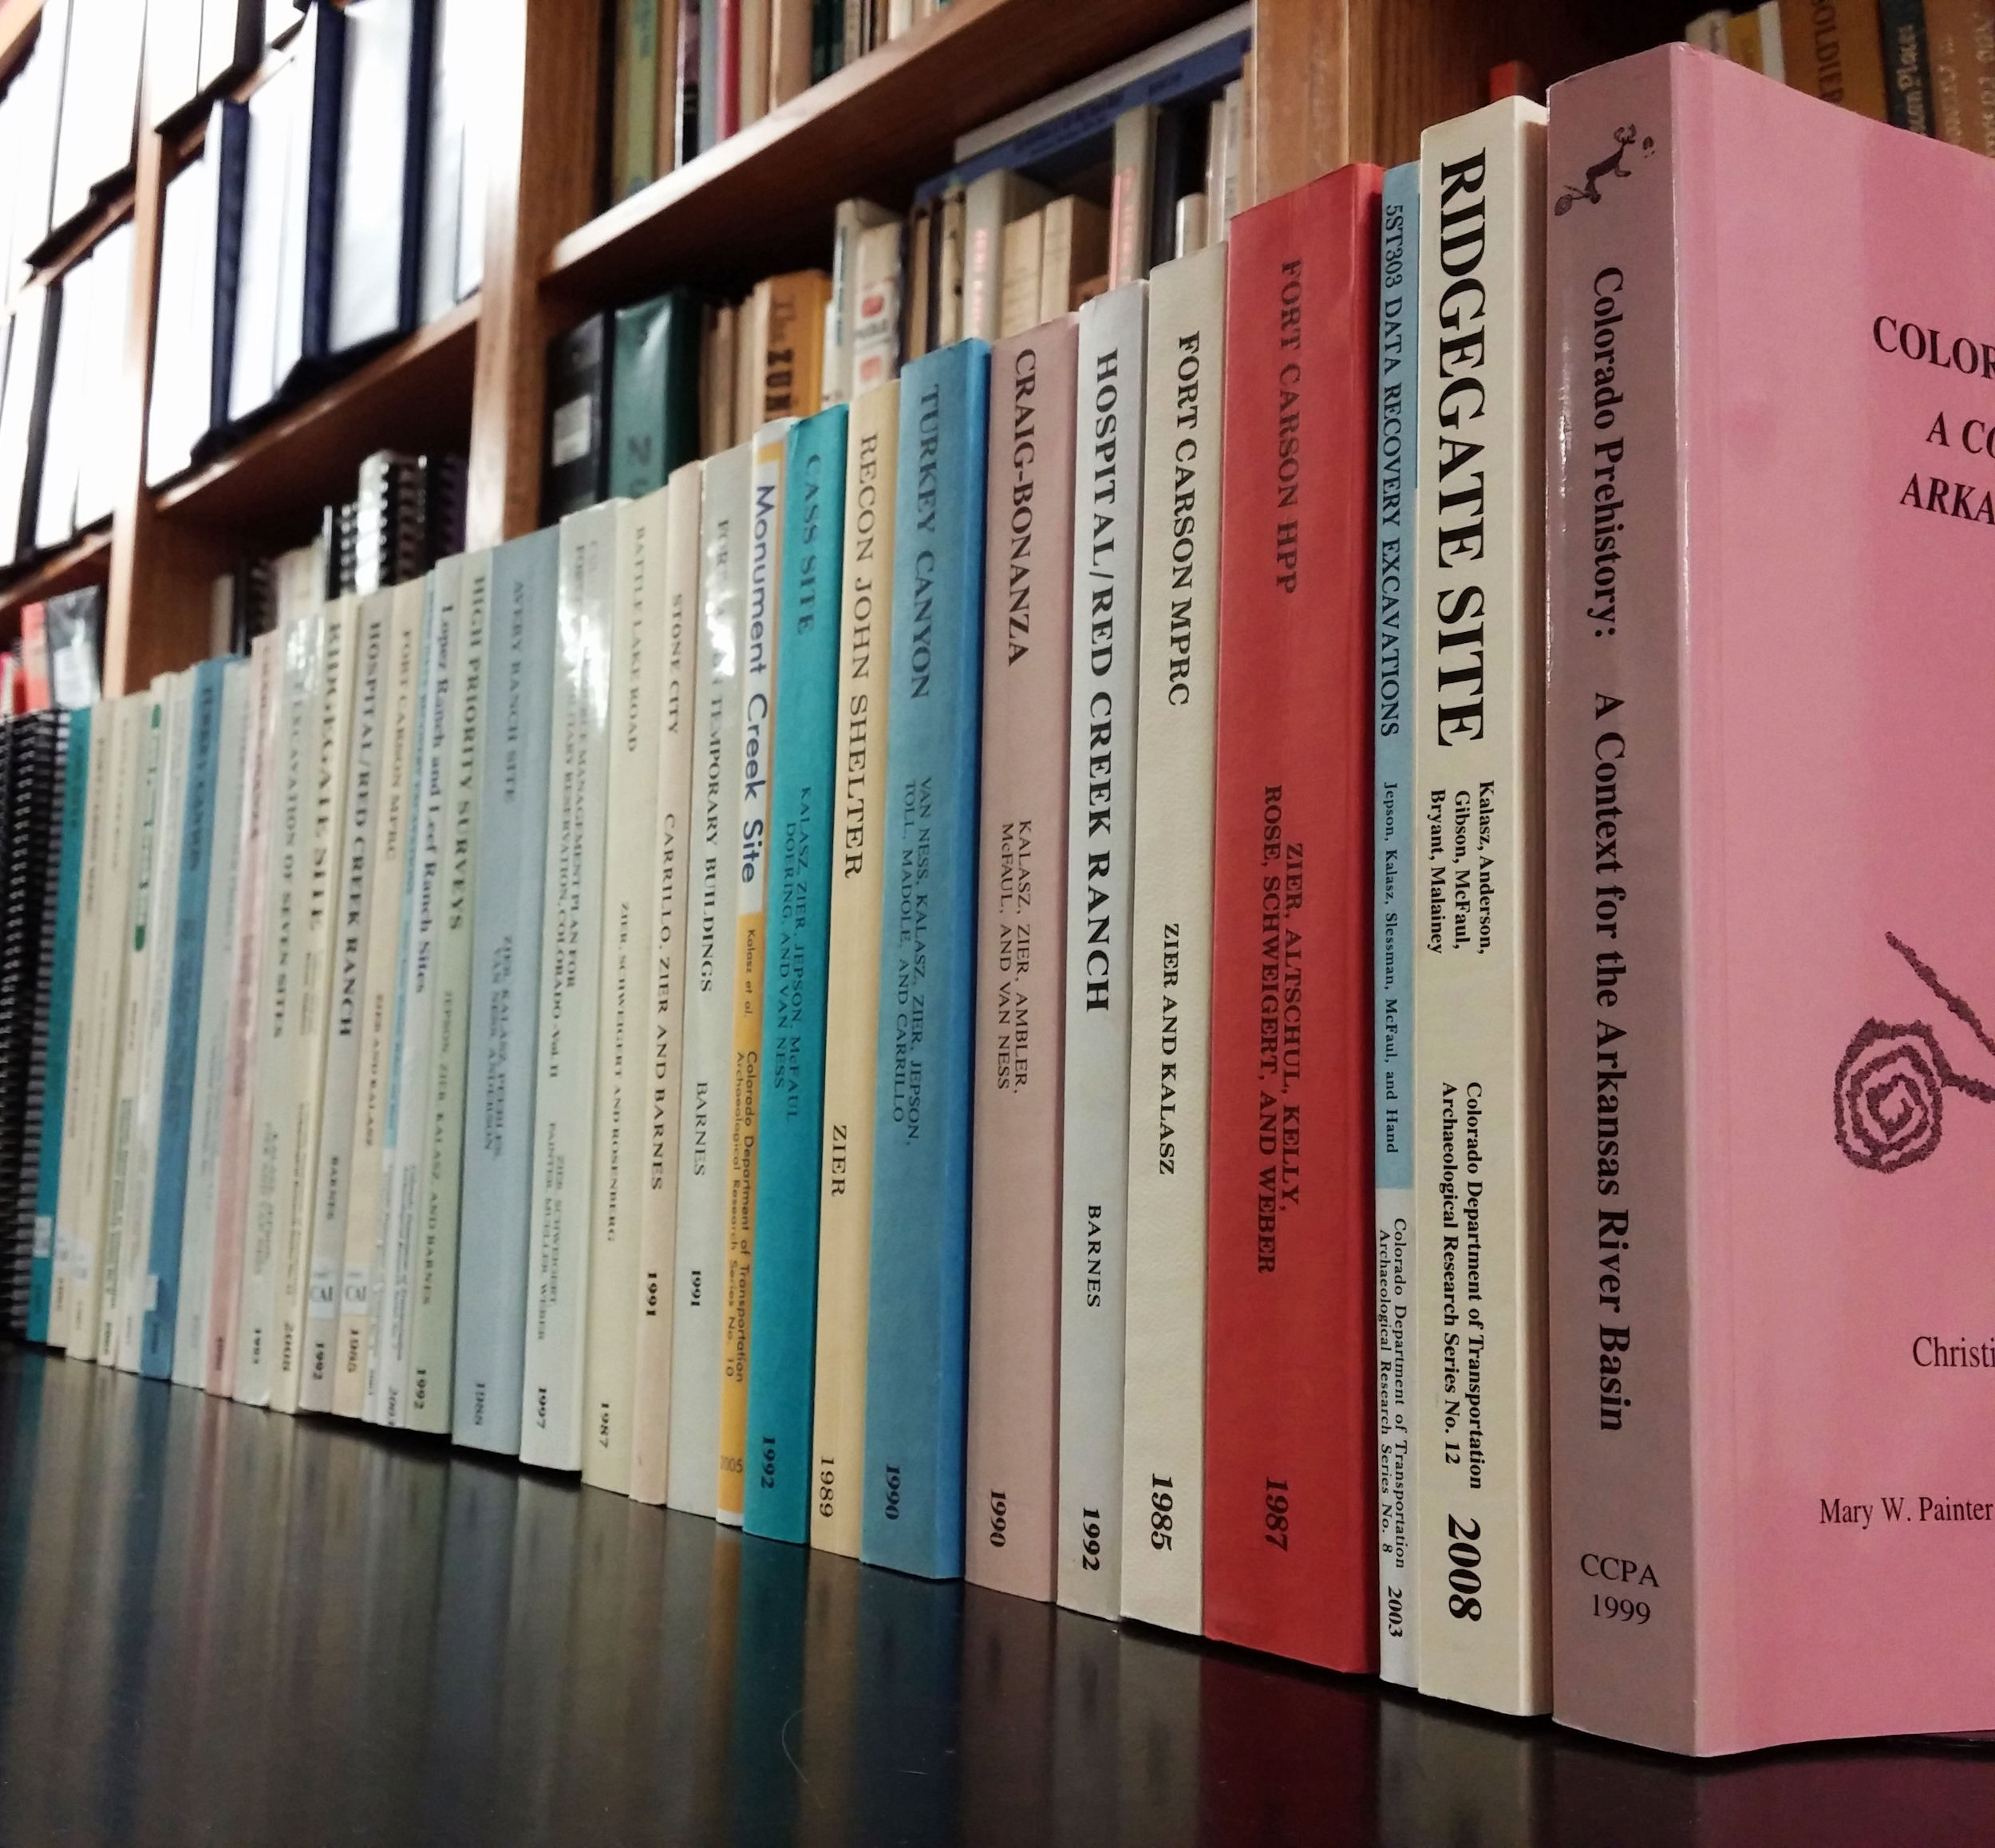 Centennial maintains a full library of technical reports and general anthropological/archaeological references.